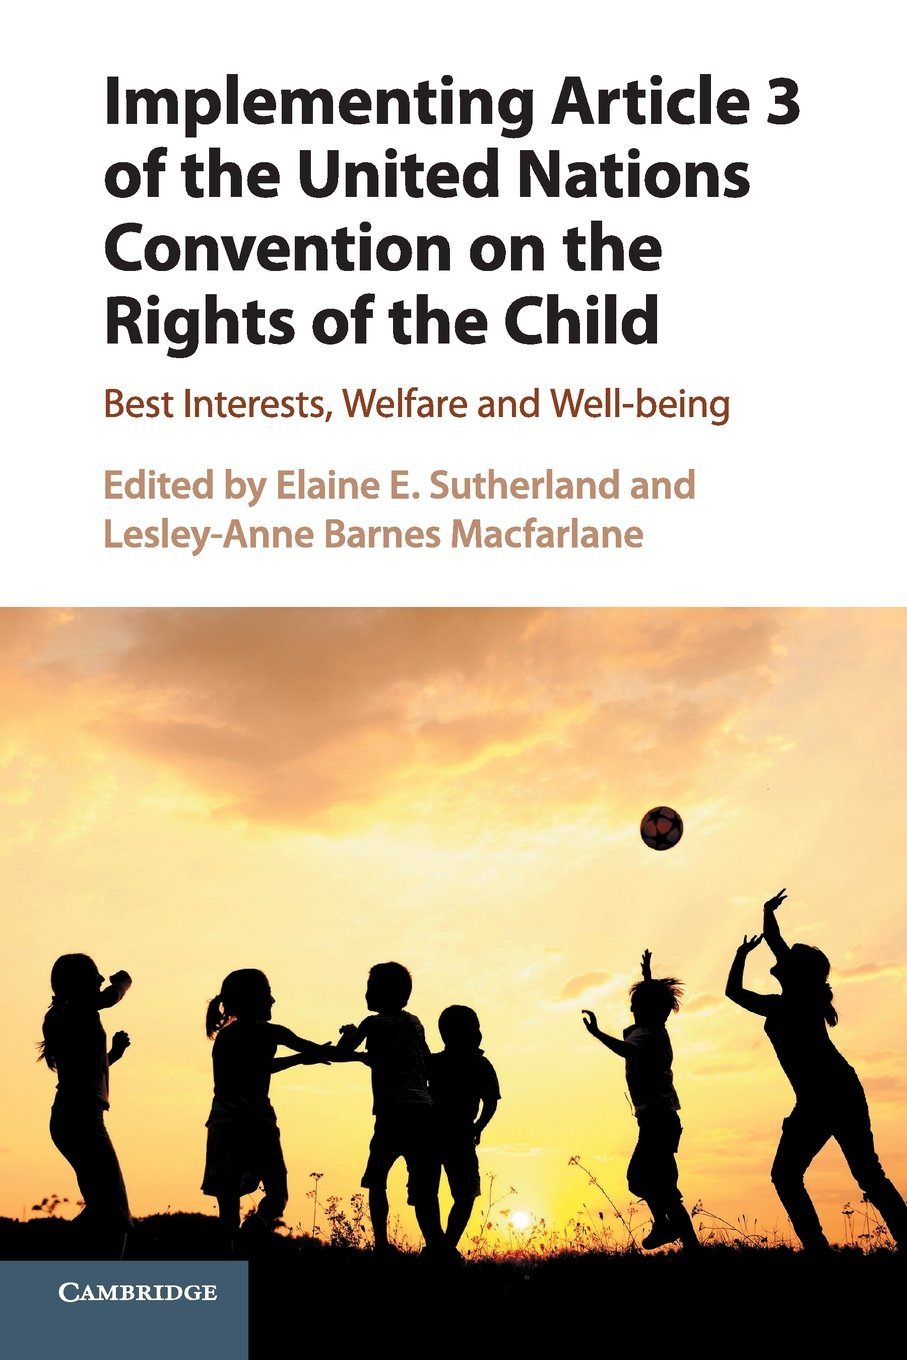 Implementing Article 3 of the United Nations Convention on the Rights of the Child: Best Interests, Welfare and Well-being PDF